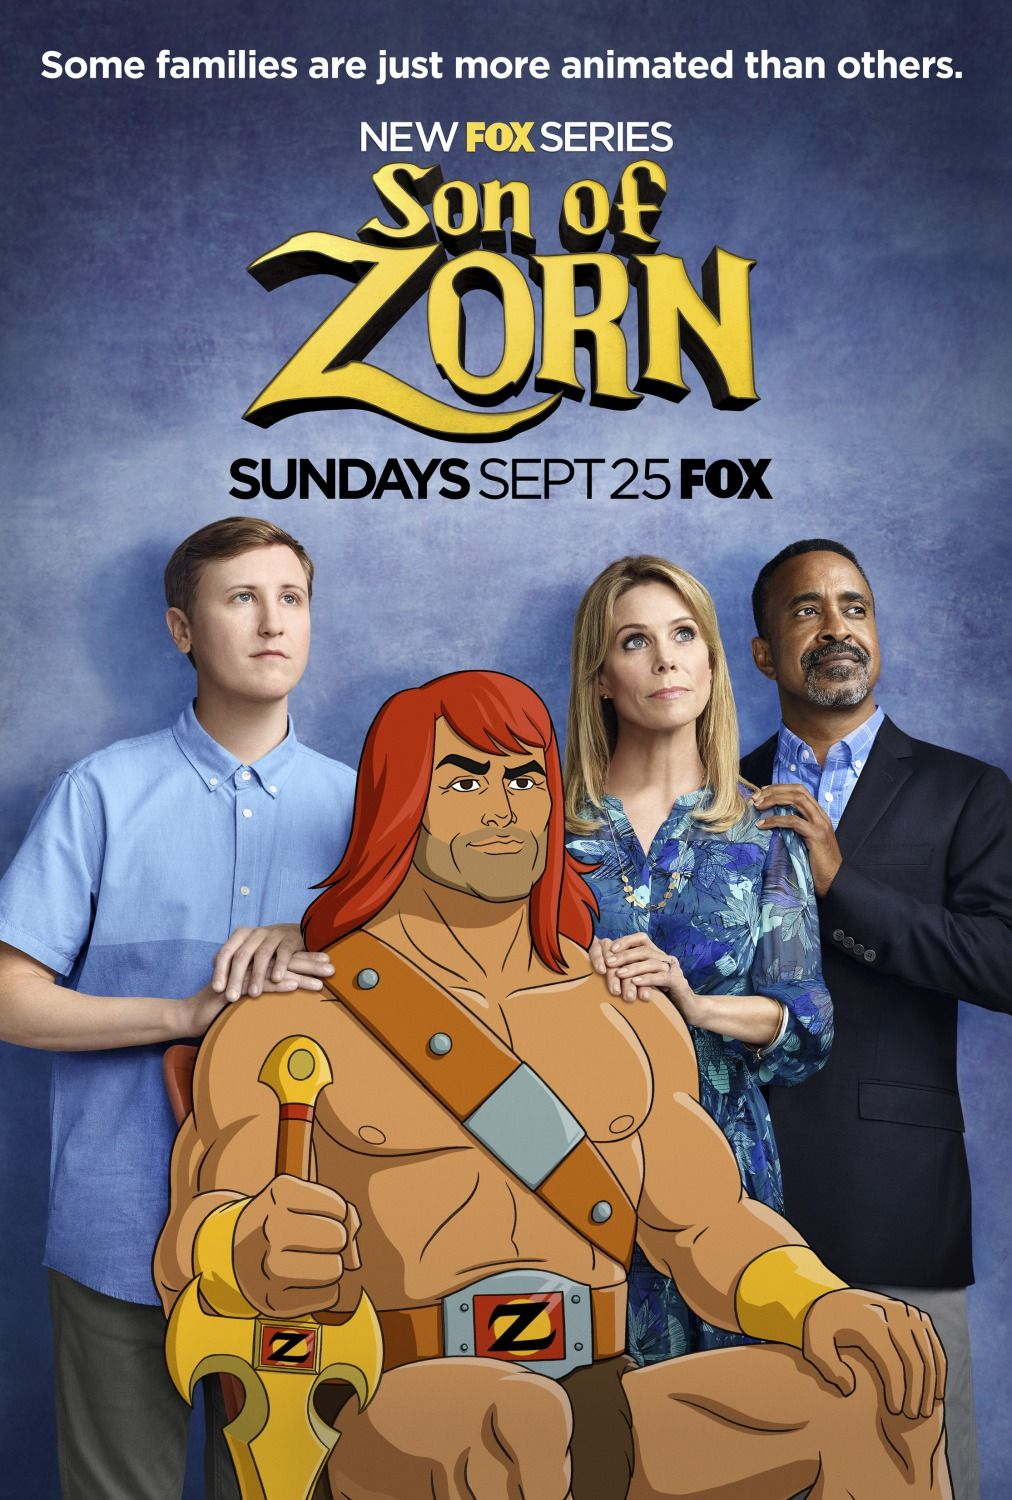 Son of Zorn Tv series 2016, Top tv shows, Tv series